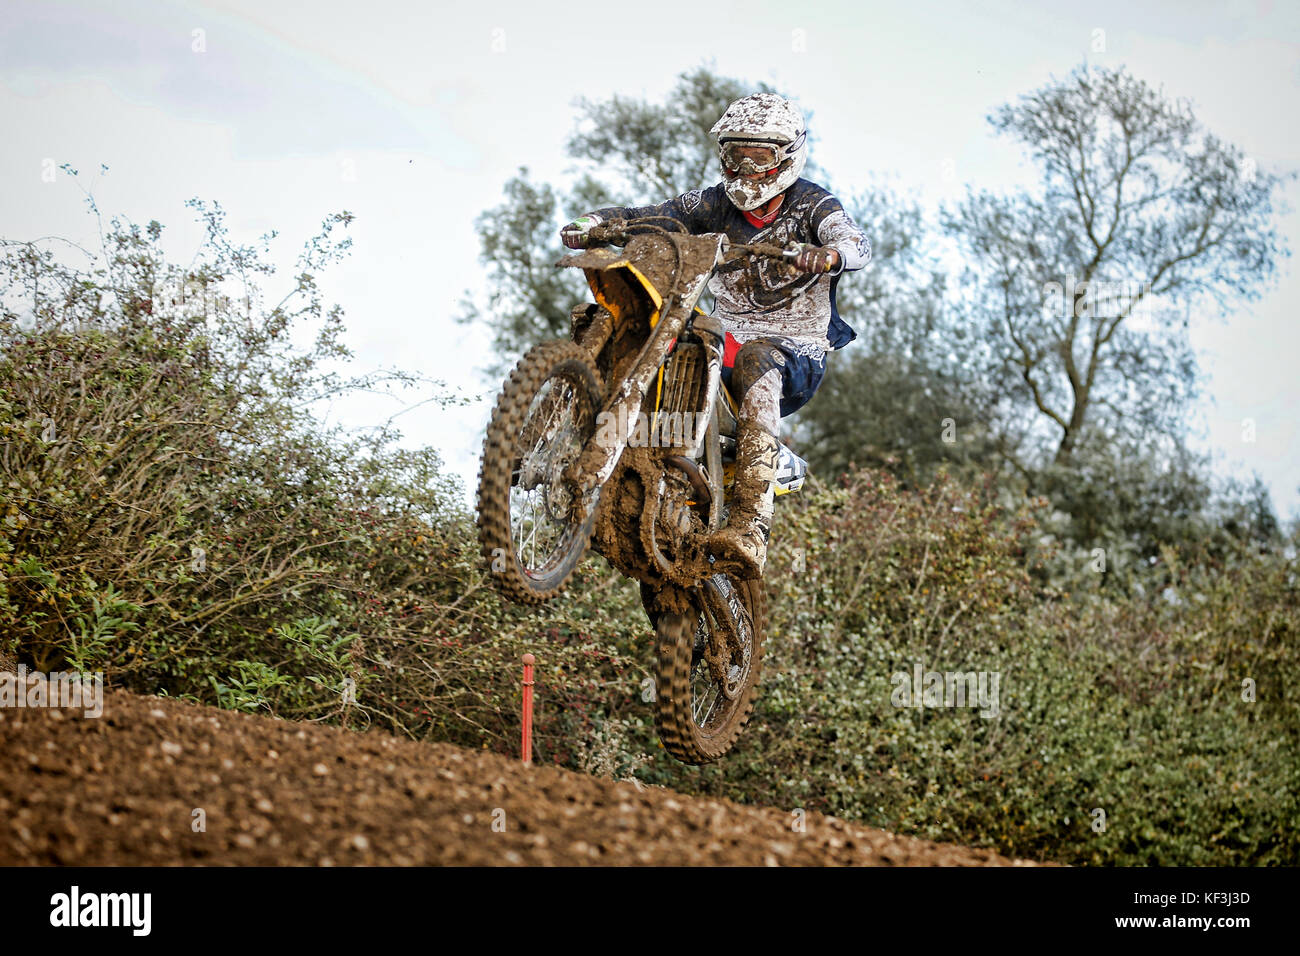 Yamaha YZ250f at Washbrook Farm Motocross Chippenham Jump Bike Yamaha MX Bike - Stock Image